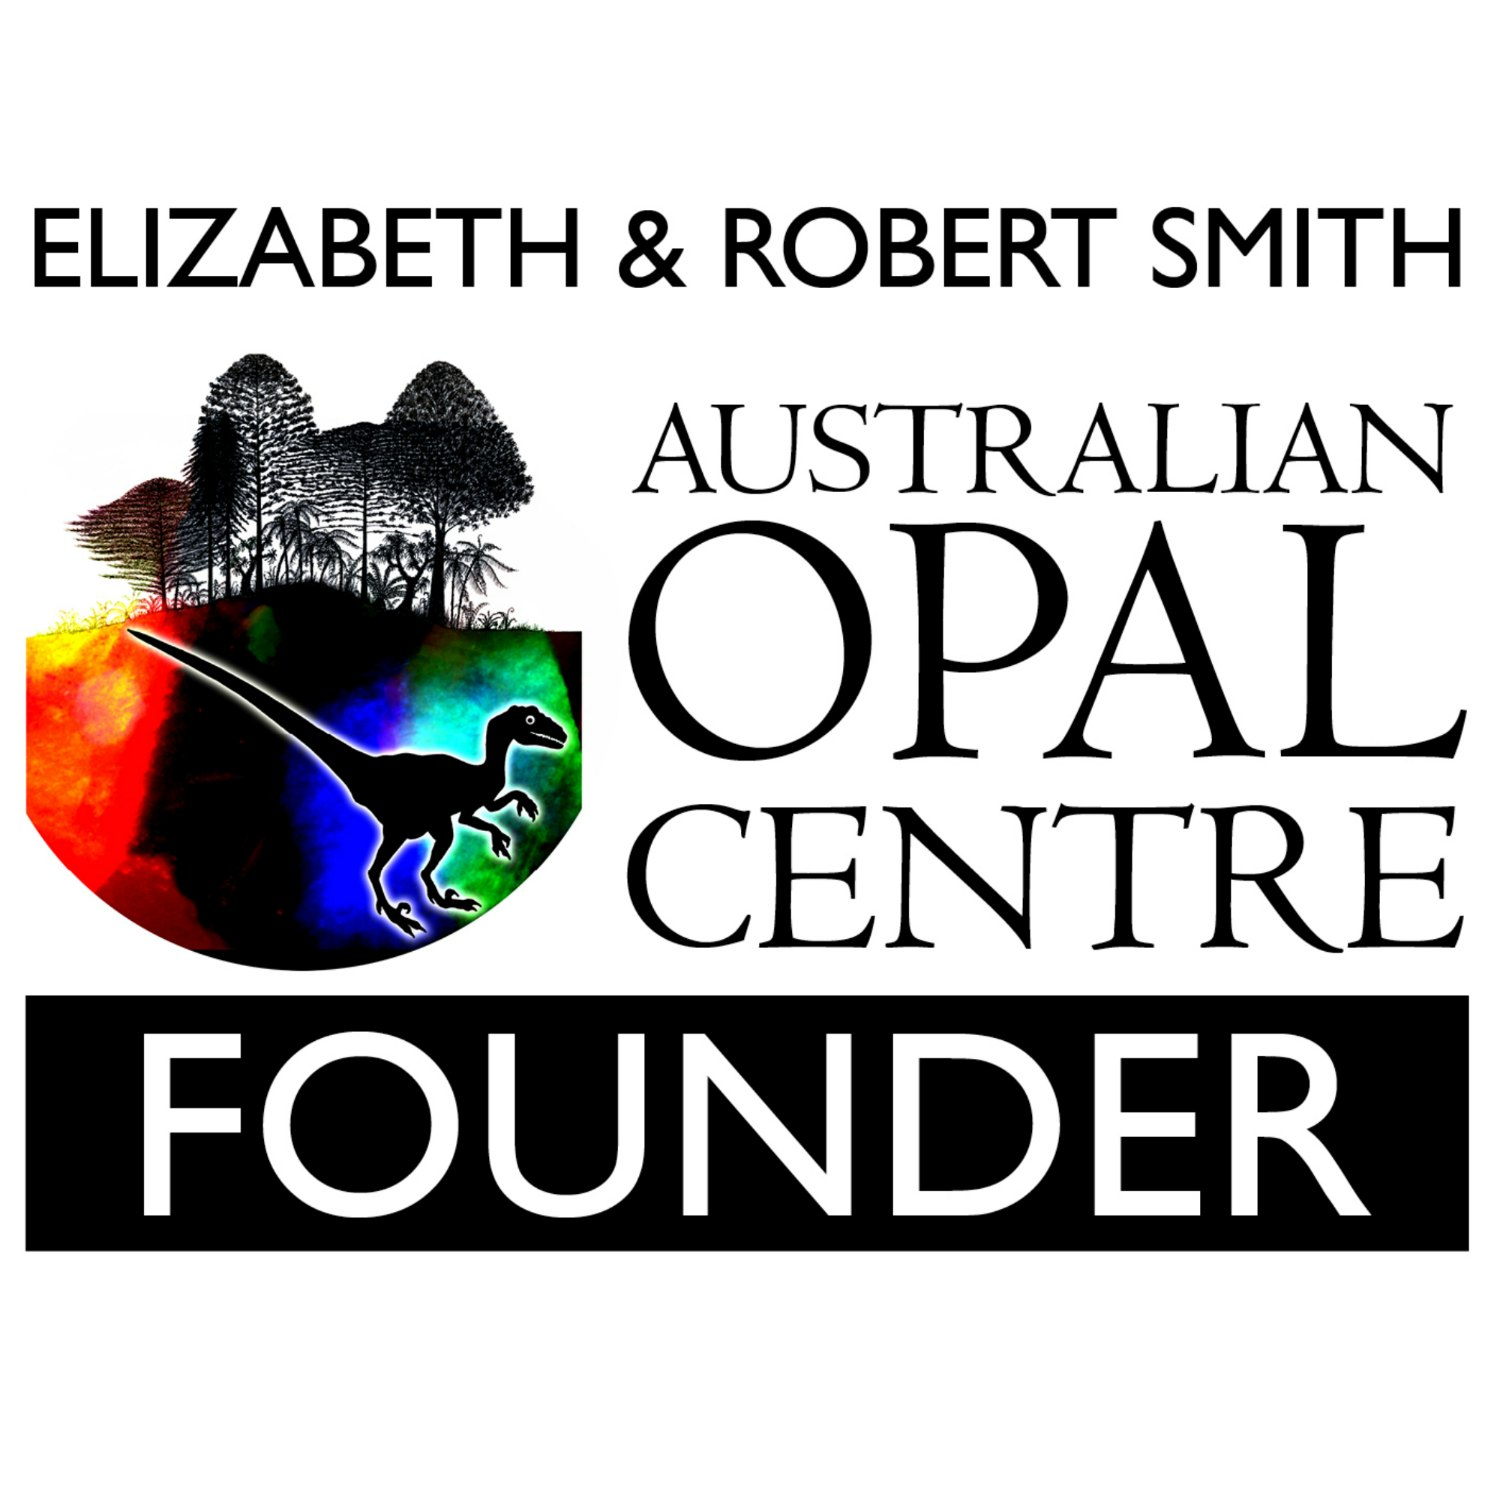 Elizabeth & Robert Smith $10,000 AOC Founder   Read Elizabeth & Robert's story here